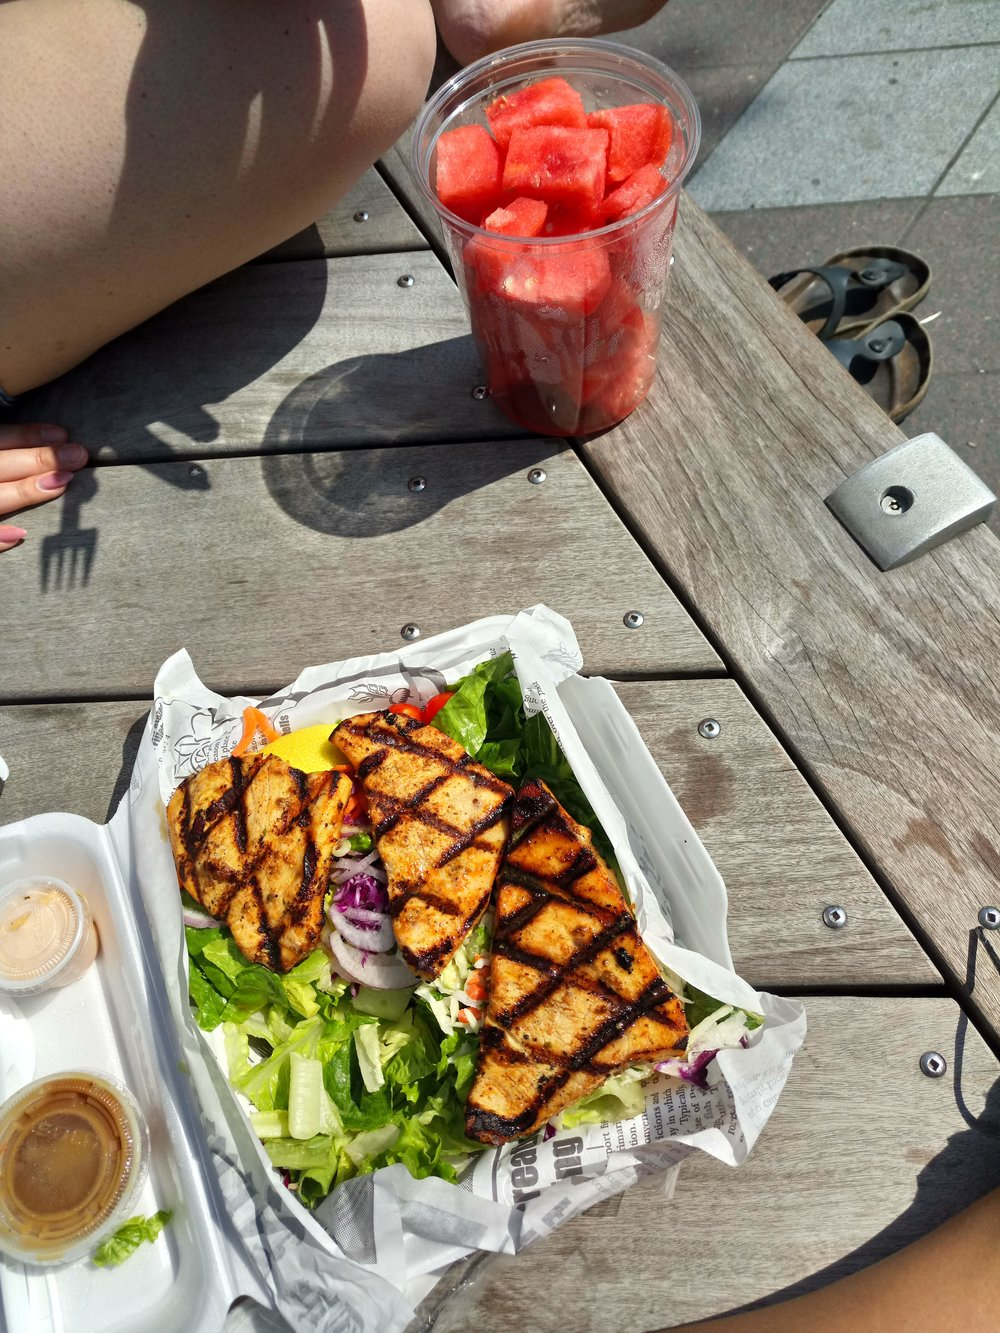 Grilled swordfish with salad (lemon, olive oil + balsamic dressing) and watermelon.